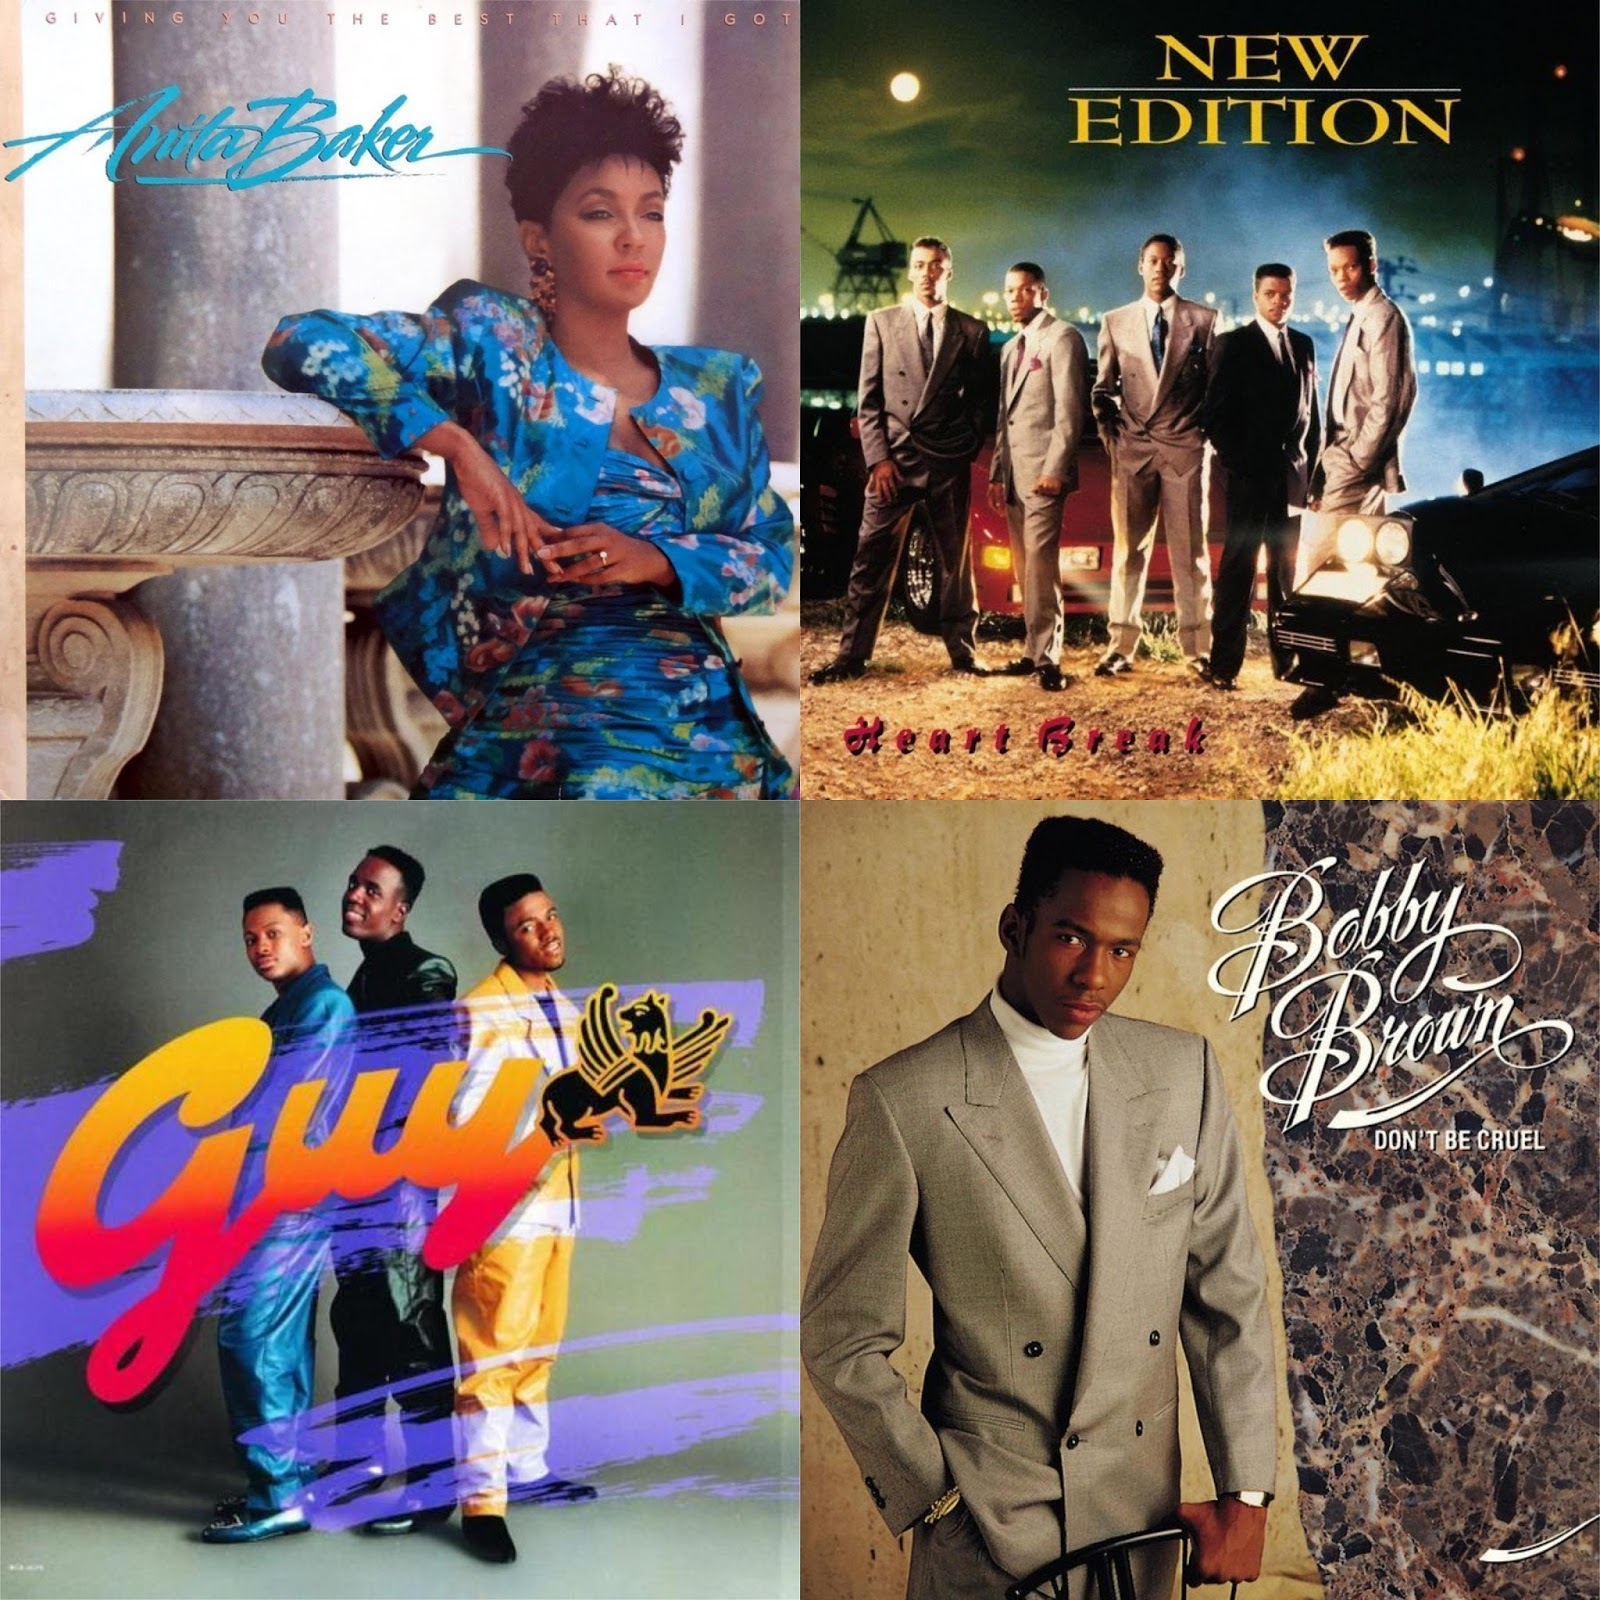 DAR Music: The 5 Greatest Years Of 80's R&B Soul - DefineARevolution com